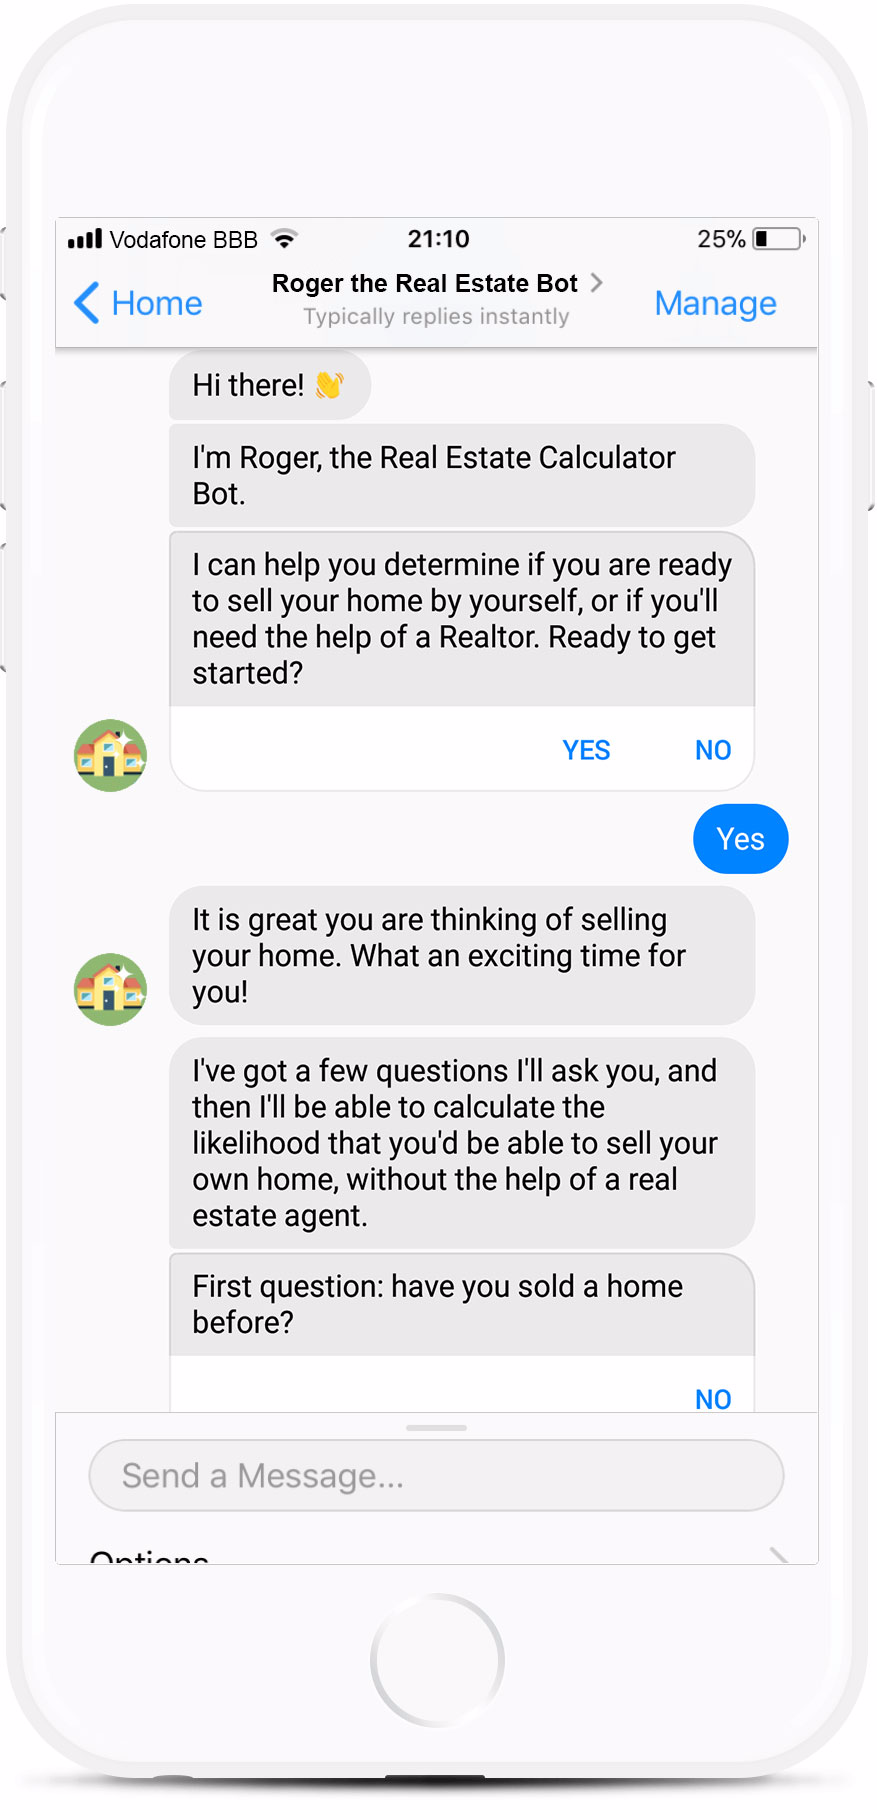 How to Build Your Own Facebook Chatbot in About 10 Minutes